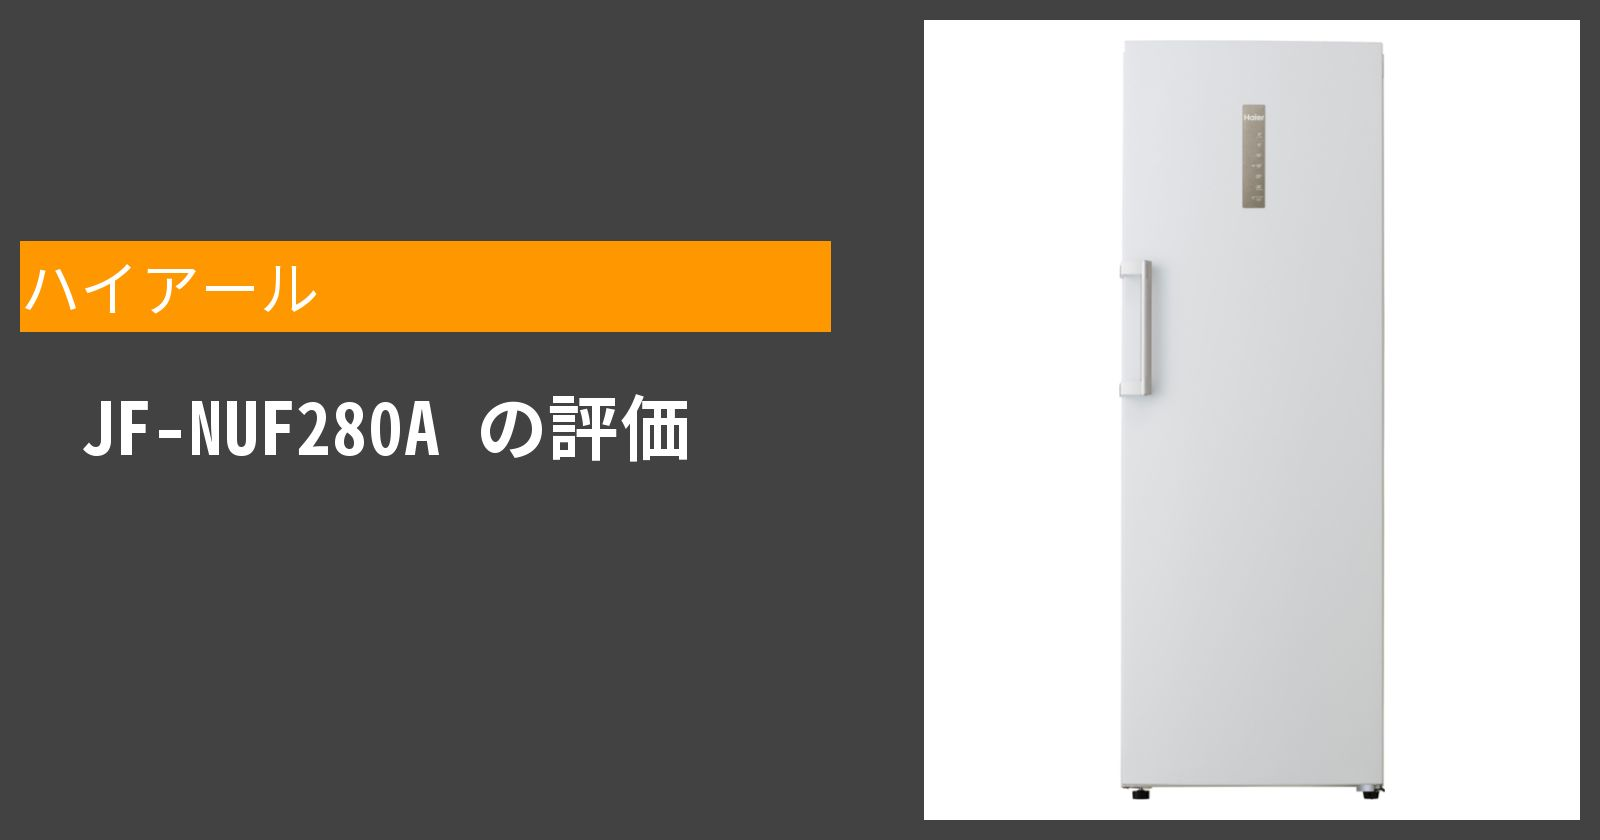 JF-NUF280Aを徹底評価